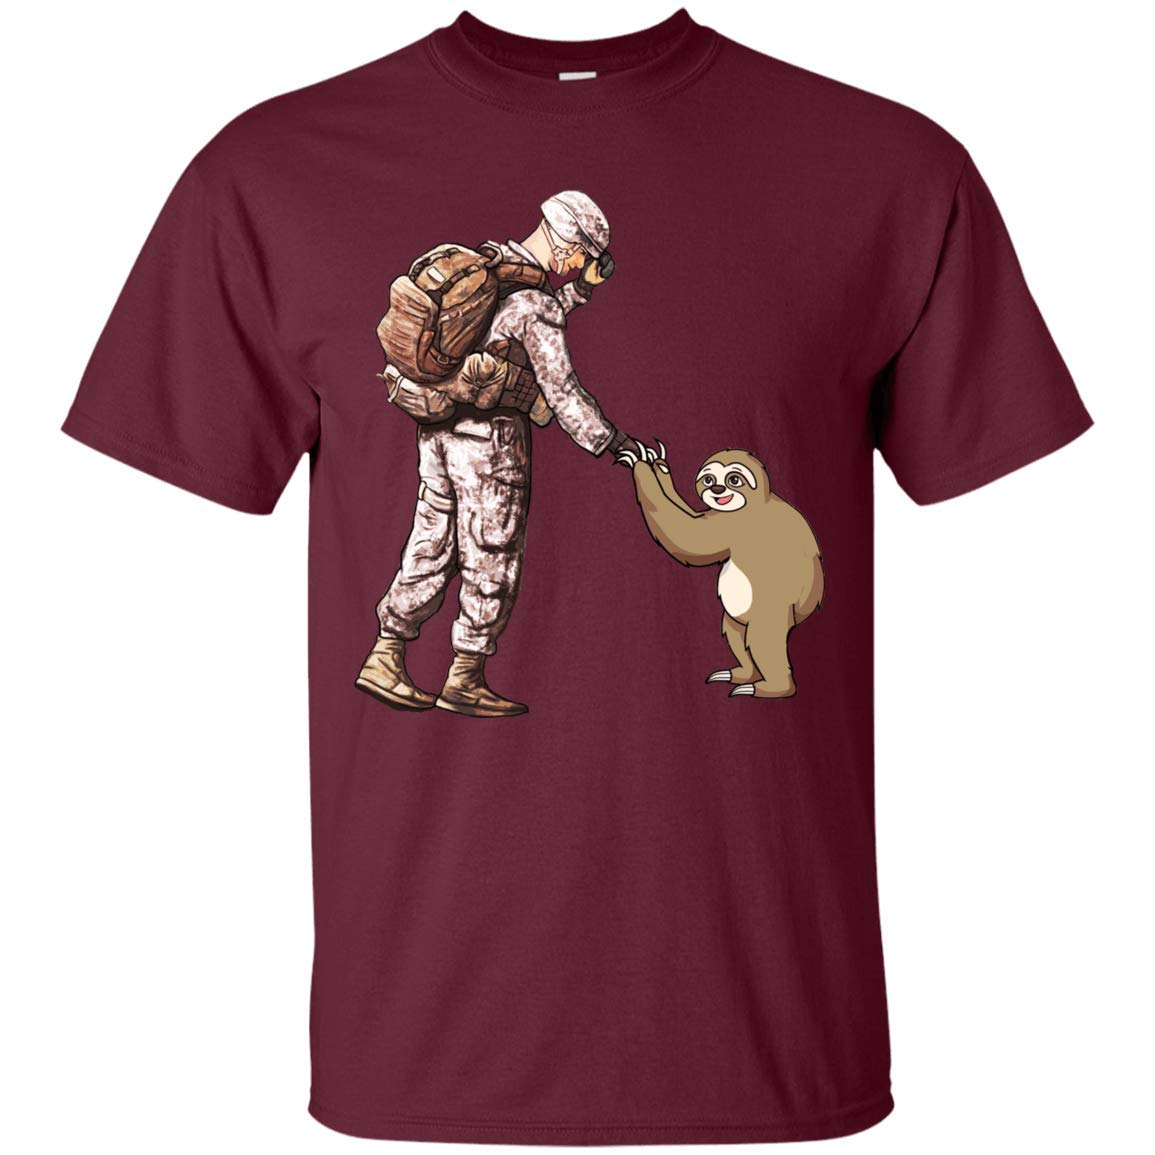 Sungox Army Man And Sloth Unisex T Shirt